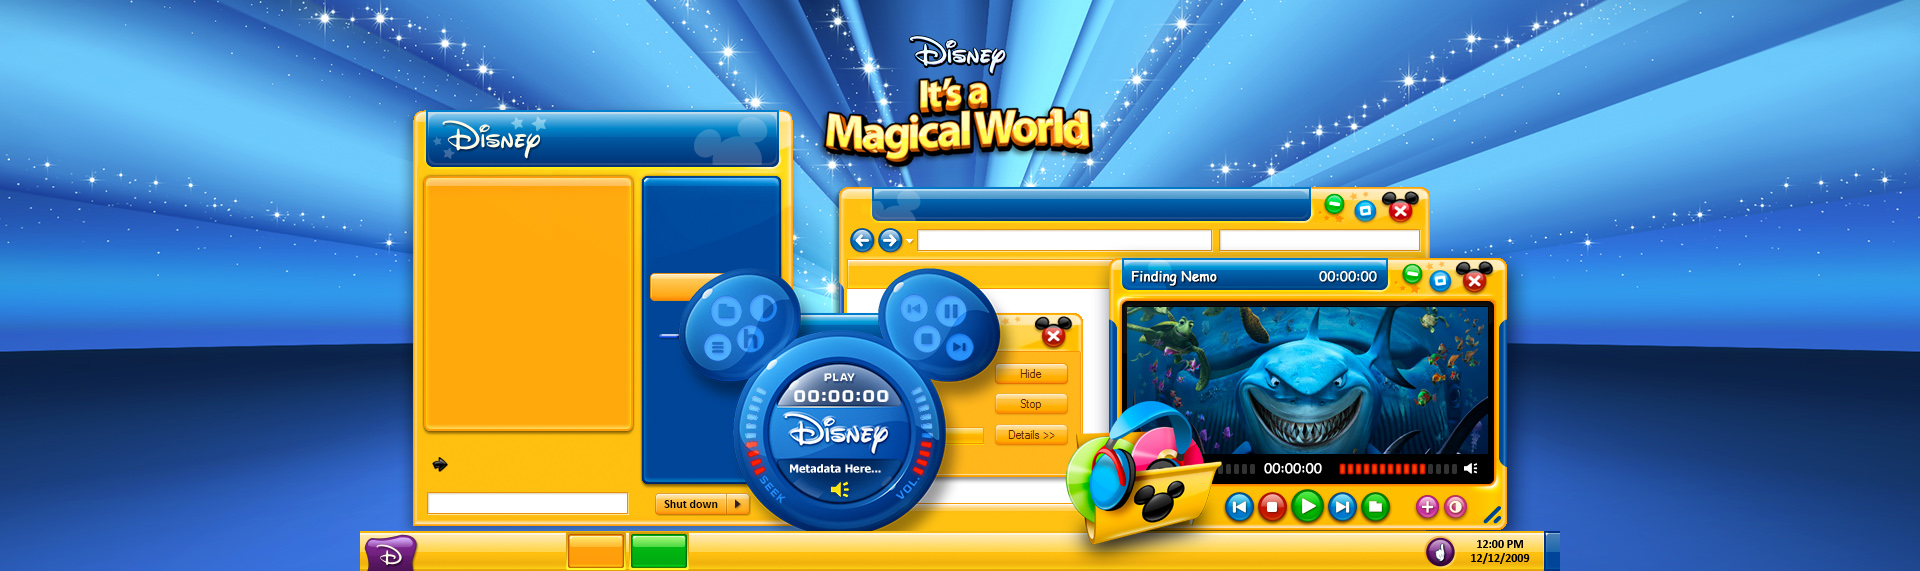 Disney's It's a Magical World  Client: The Walt Disney Company  Initially contracted by The Walt Disney Company and then under license, the Official Disney Desktop theme for Windows 7, Vista & XP, features 5 color themes, an assortment of magical desktop icons, custom wallpapers, a fun Mickey Mouse iTunes audio remote and a Windows Media Player skin. The theme was powered by The Skins Factory's advanced Windows desktop theming solution Hyperdesk, Unfortunately, this magical theme is no longer available.